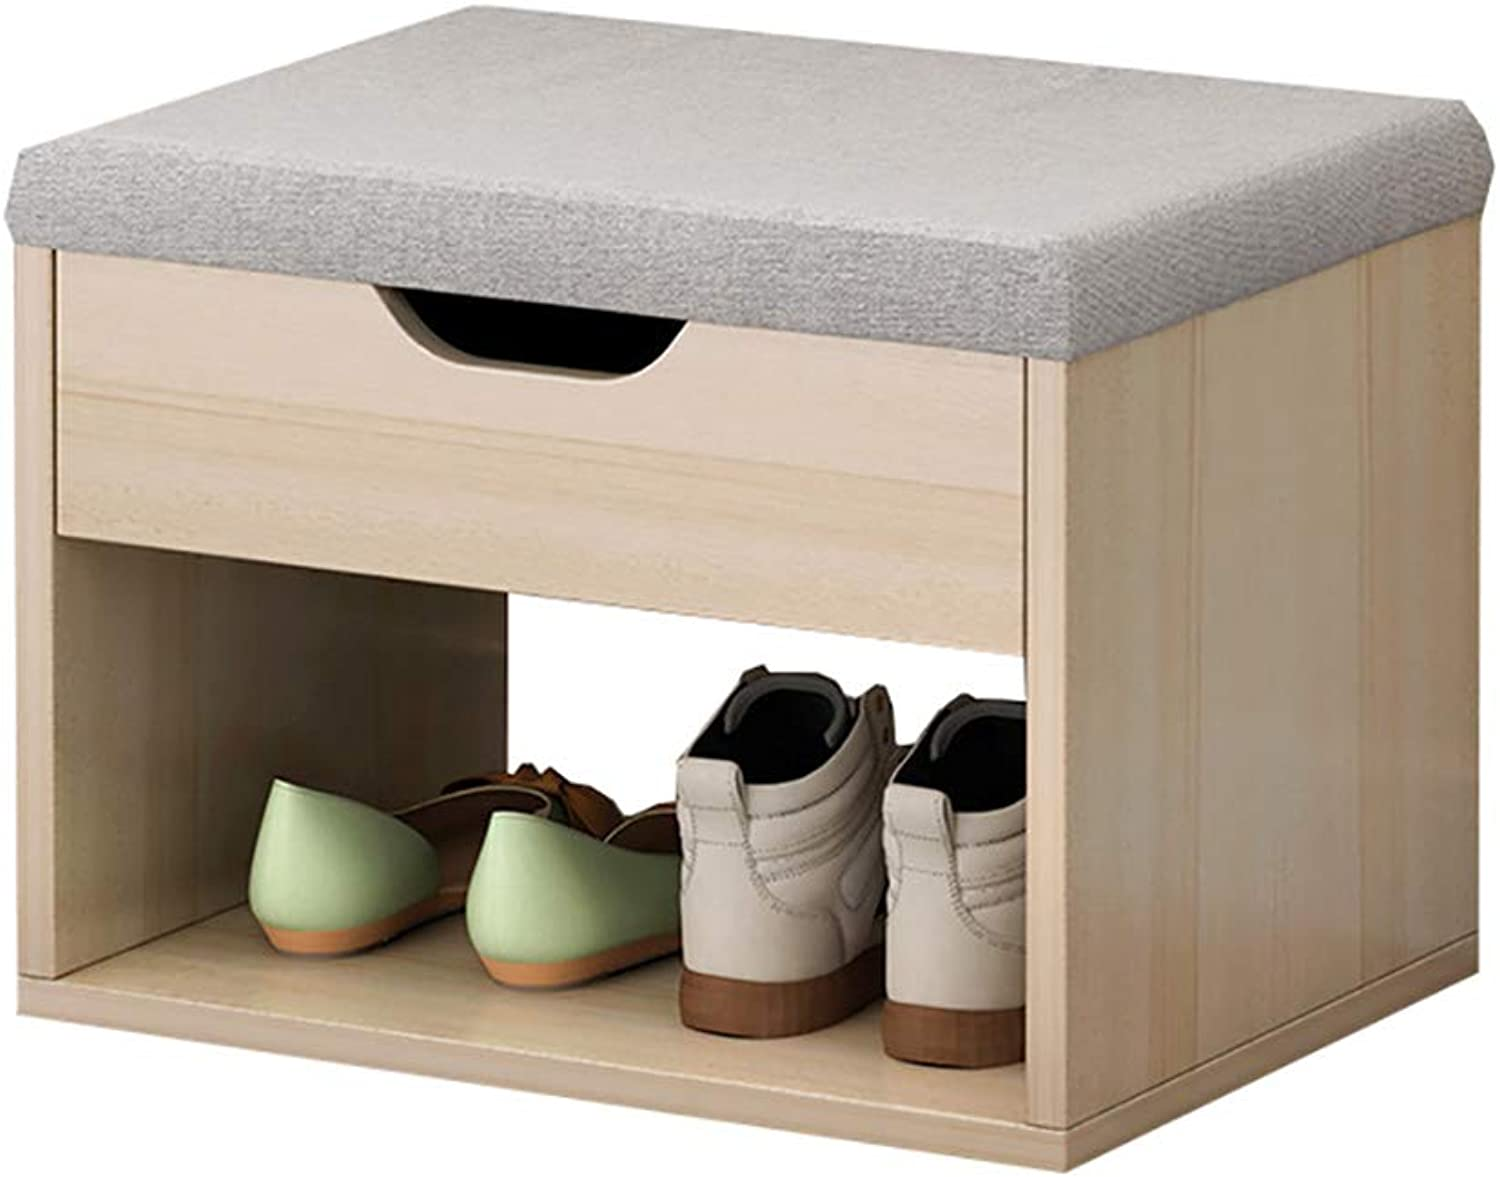 YXX- Small Wooden shoes Racks Bench 2 Tiers Wood Storage Stool for Door & Entryway, 40x30x25cm